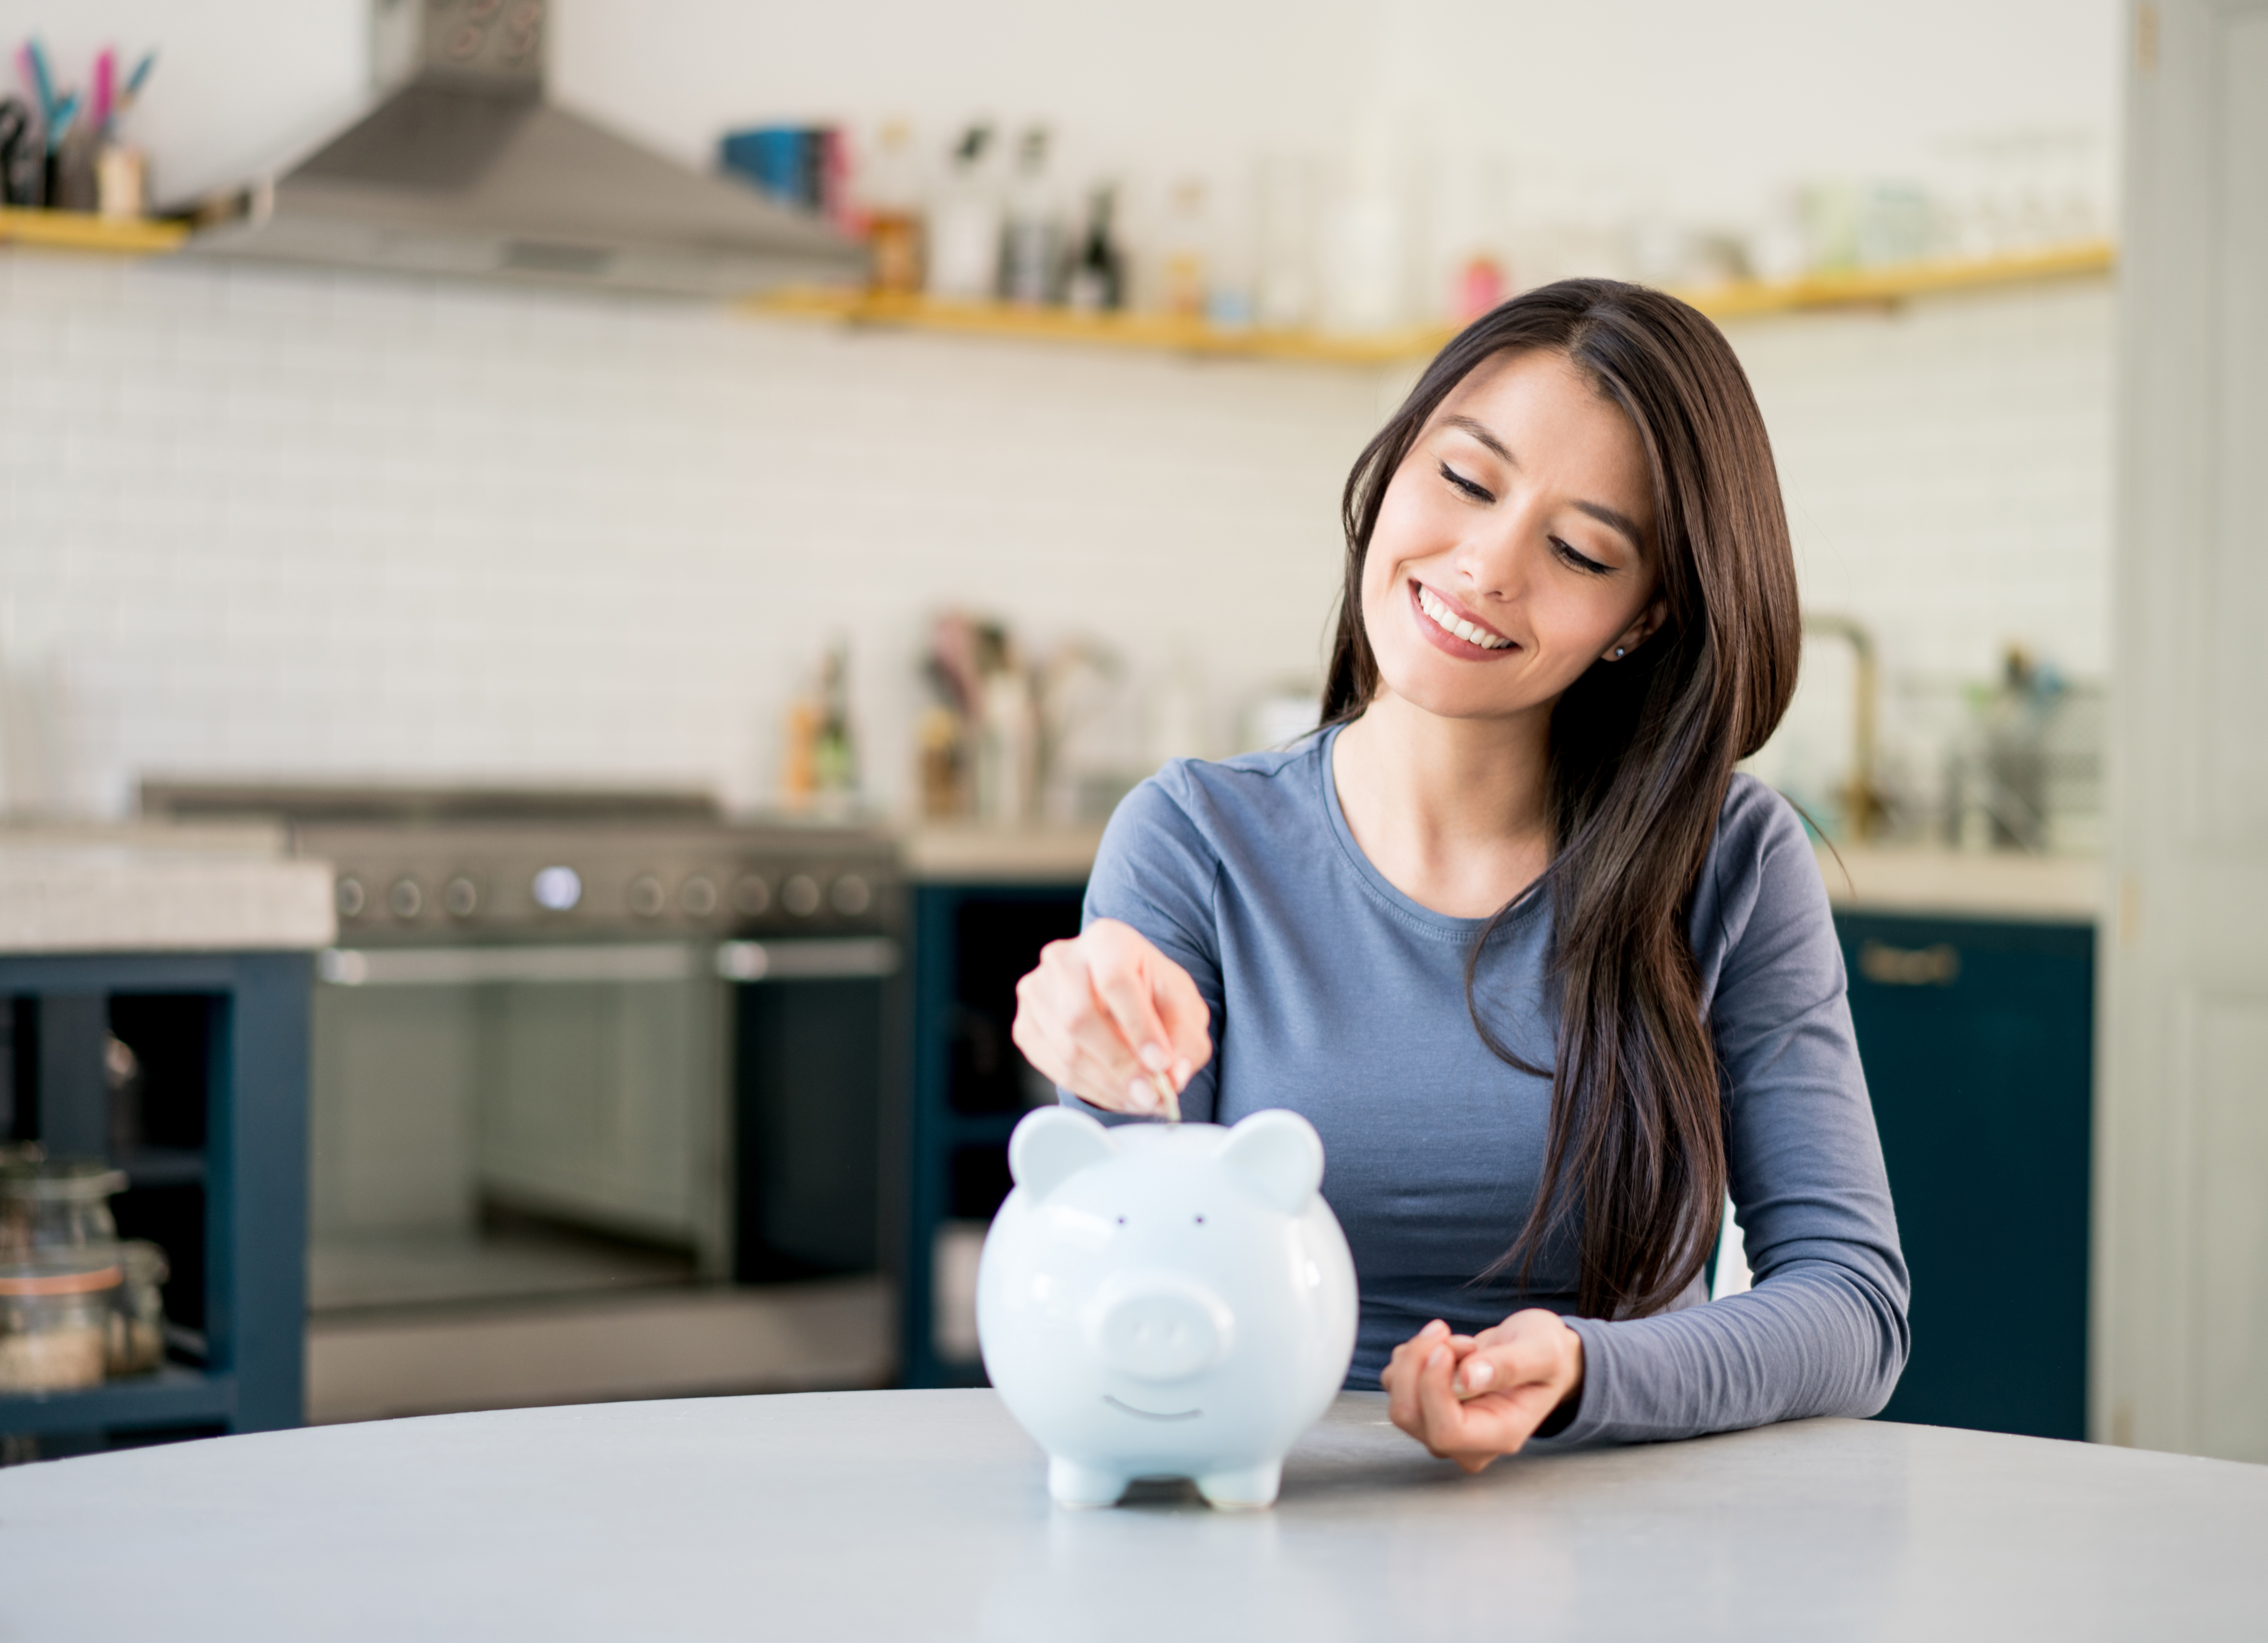 How Much Money Should I Save Before Building a House? - Budgeting Money